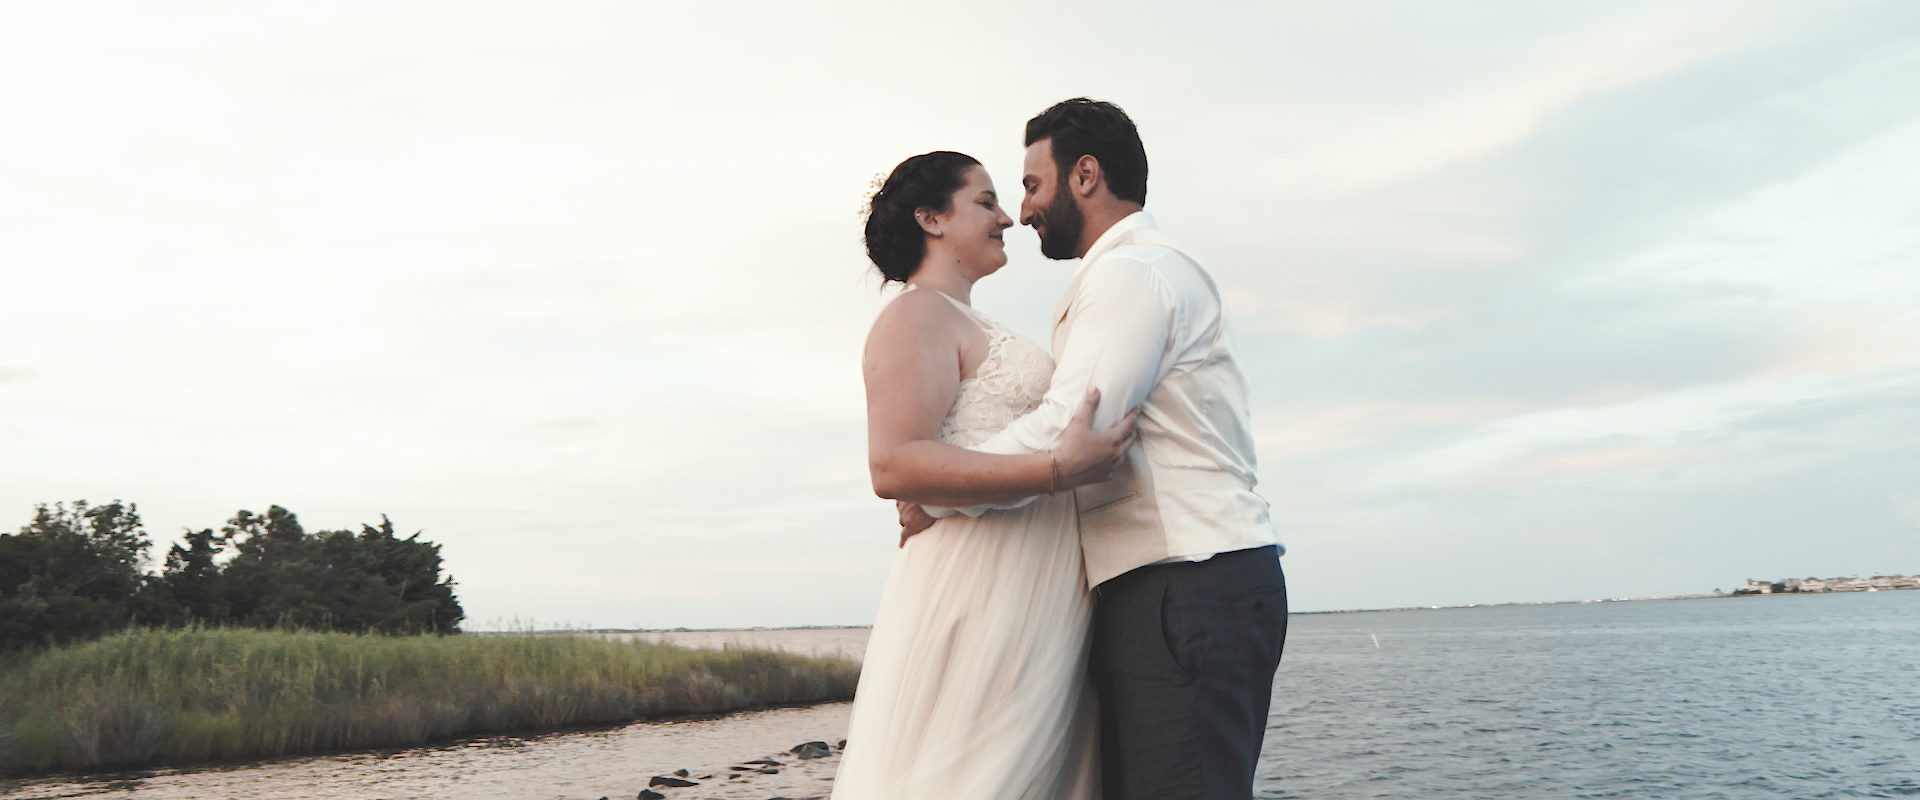 Zack + Hayley | Manteo, North Carolina | Roanoke Island Festival Park, Manteo